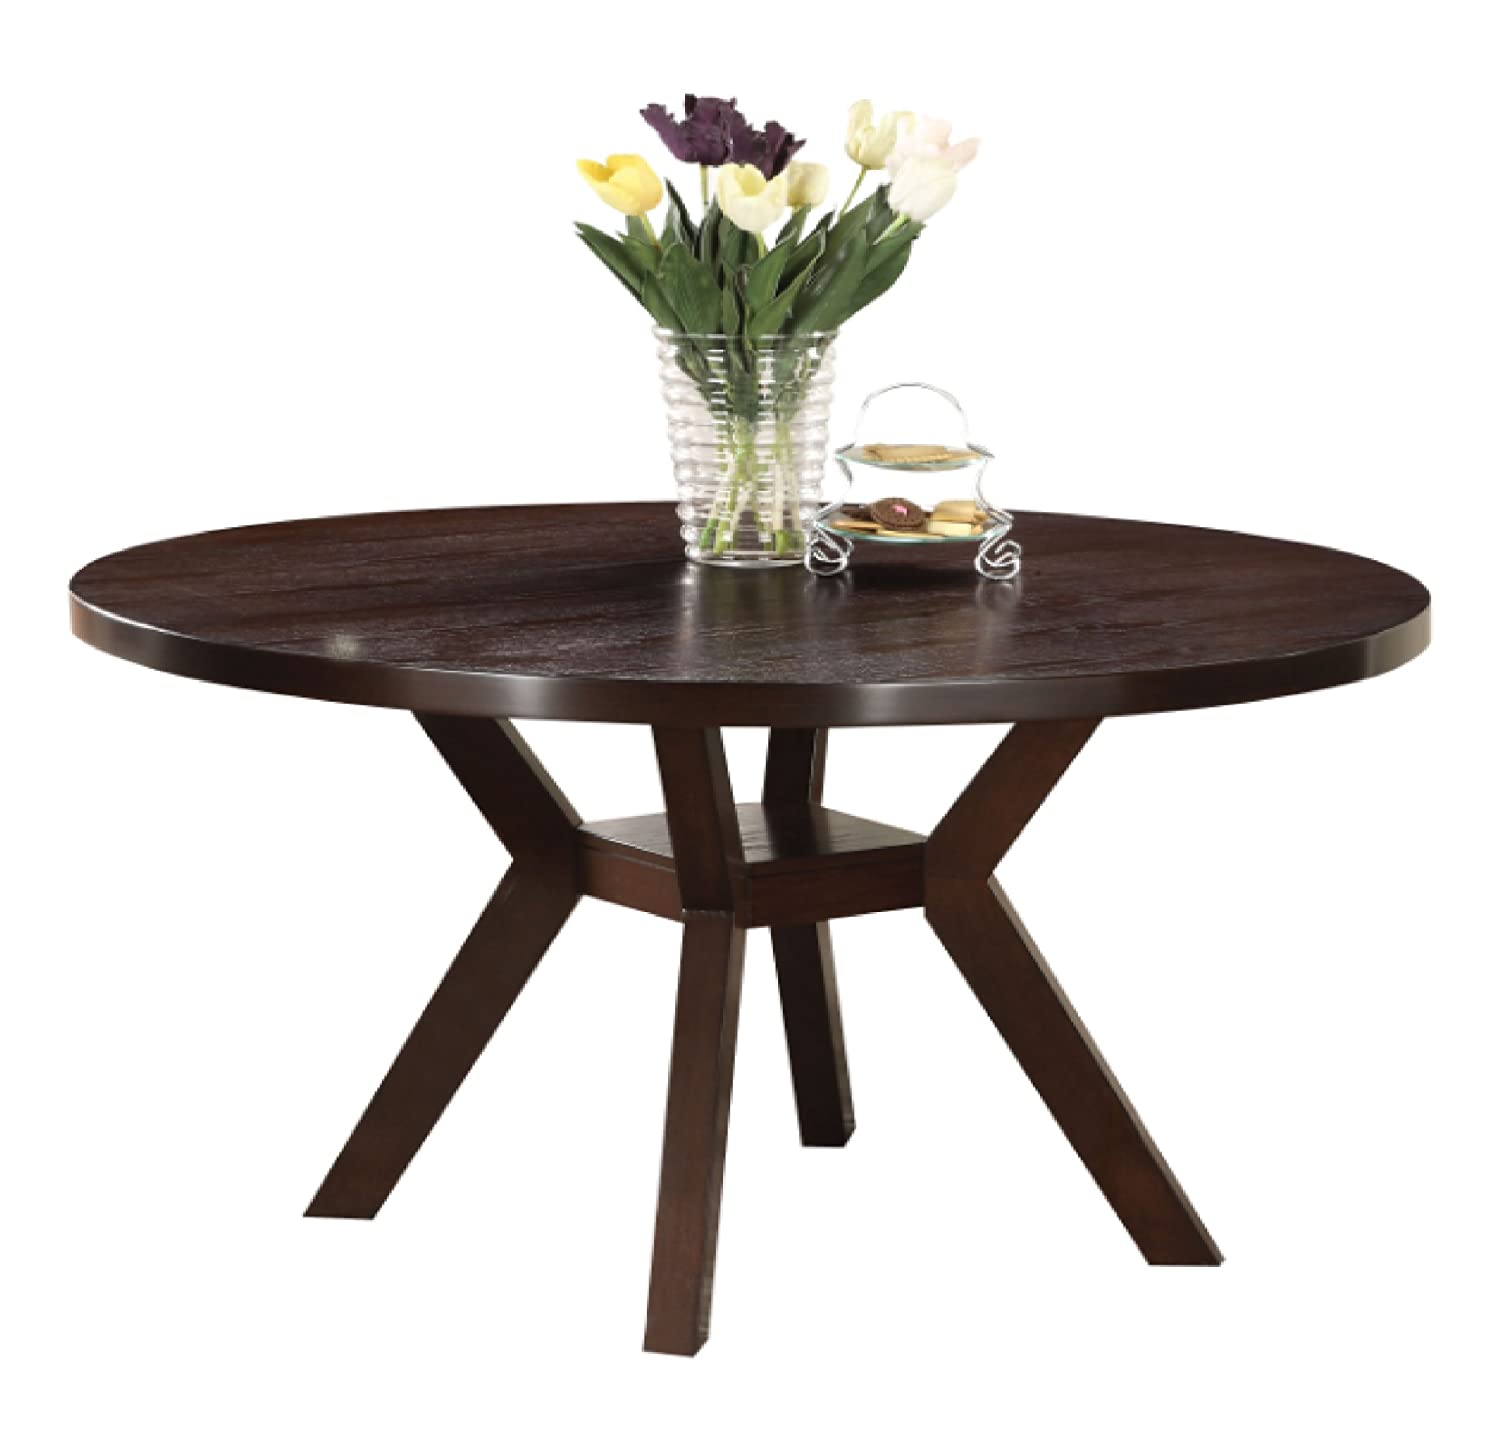 amazoncom acme 16250 drake espresso round dining table 48 inch tables - Dining Table Round Wood